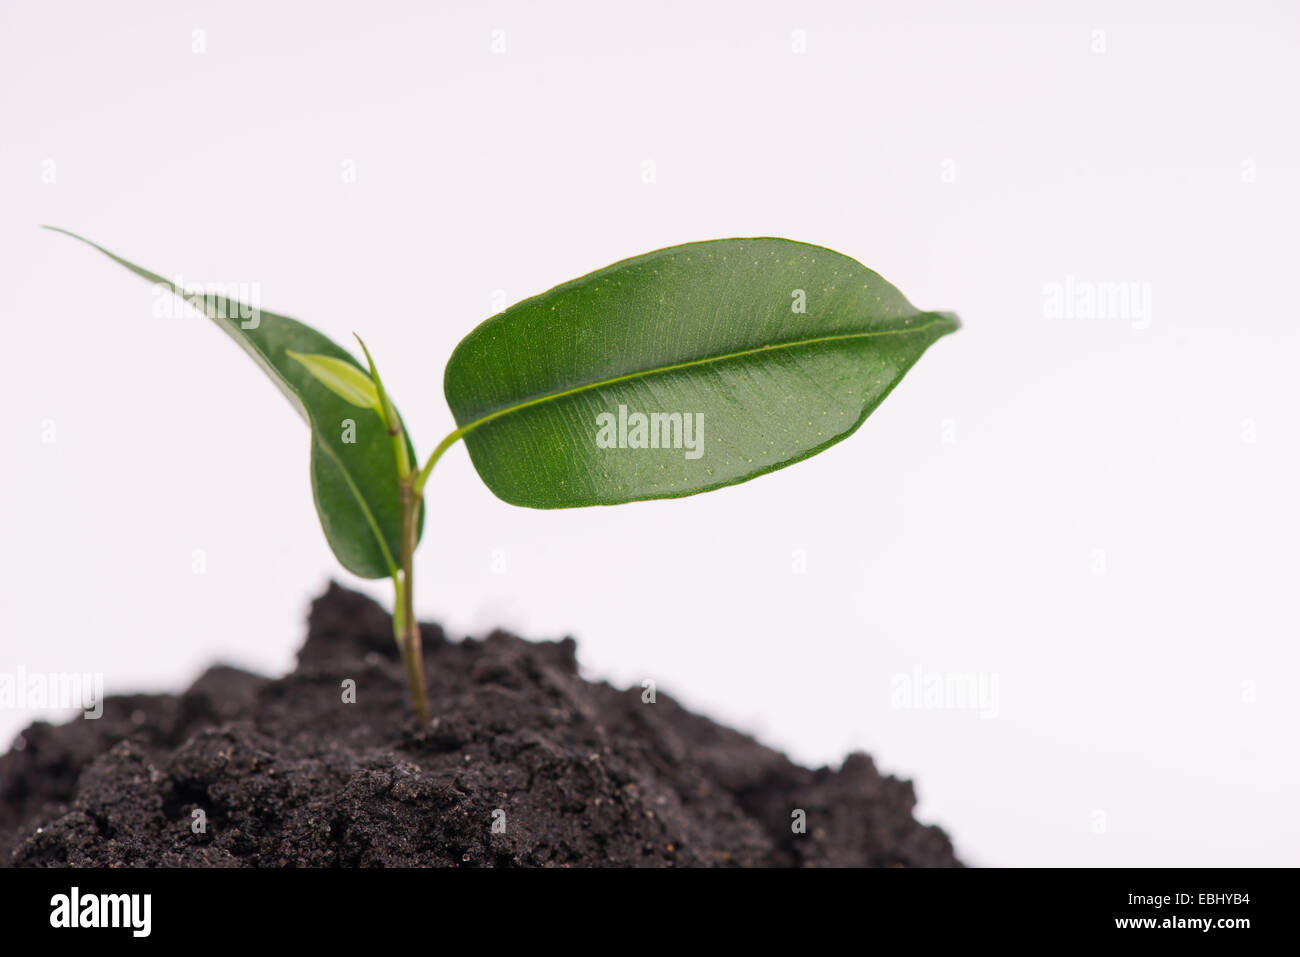 Concept of new life - Stock Image